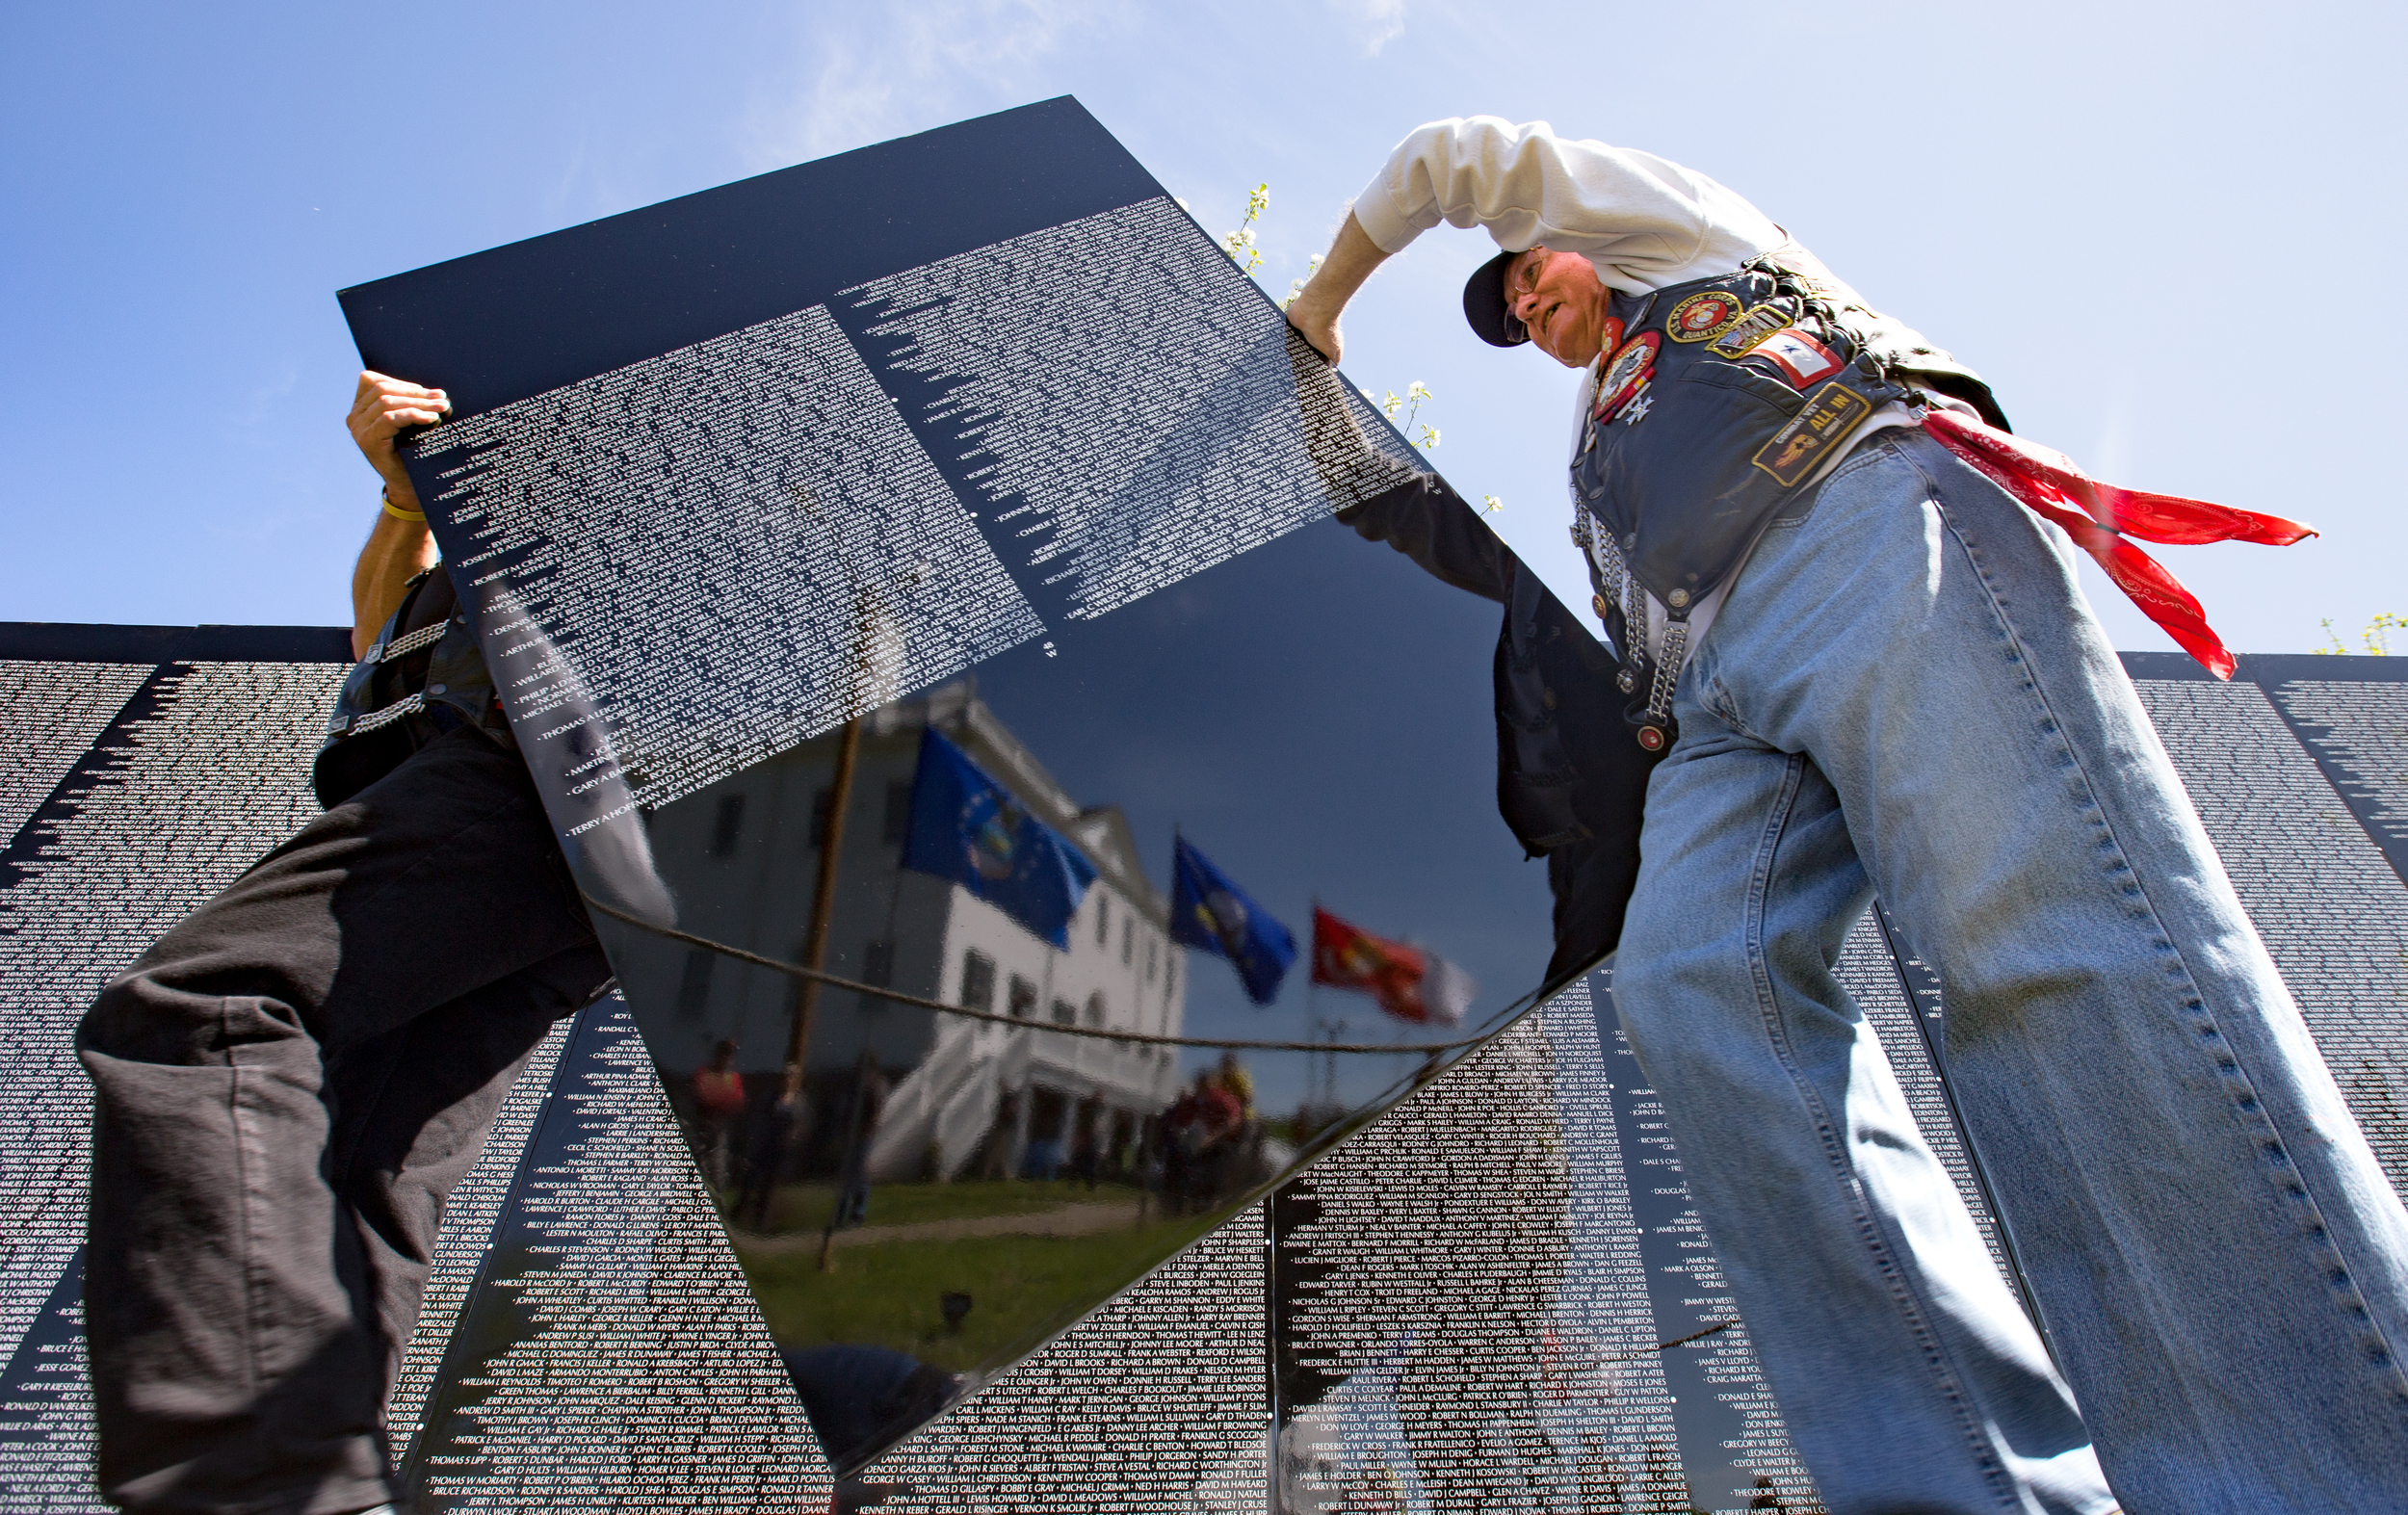 """THOMASTON, MAINE -- 05/26/2016 -- Roland Scott Jr. (right), of Westbrook, also known as """"Atom Ant"""" by other riders in the Combat Veterans Motorcycle Association, helps fellow rider and veteran Terry L. Wright Sr., """"Starlifter"""", of Gorham, carry a piece of The Moving Wall at the Knox Museum on Thursday during the wall's installation. Since 1984 the half-size replica of the Vietnam Veterans Memorial has been traveling the U.S.(Micky Bedell   BDN)"""